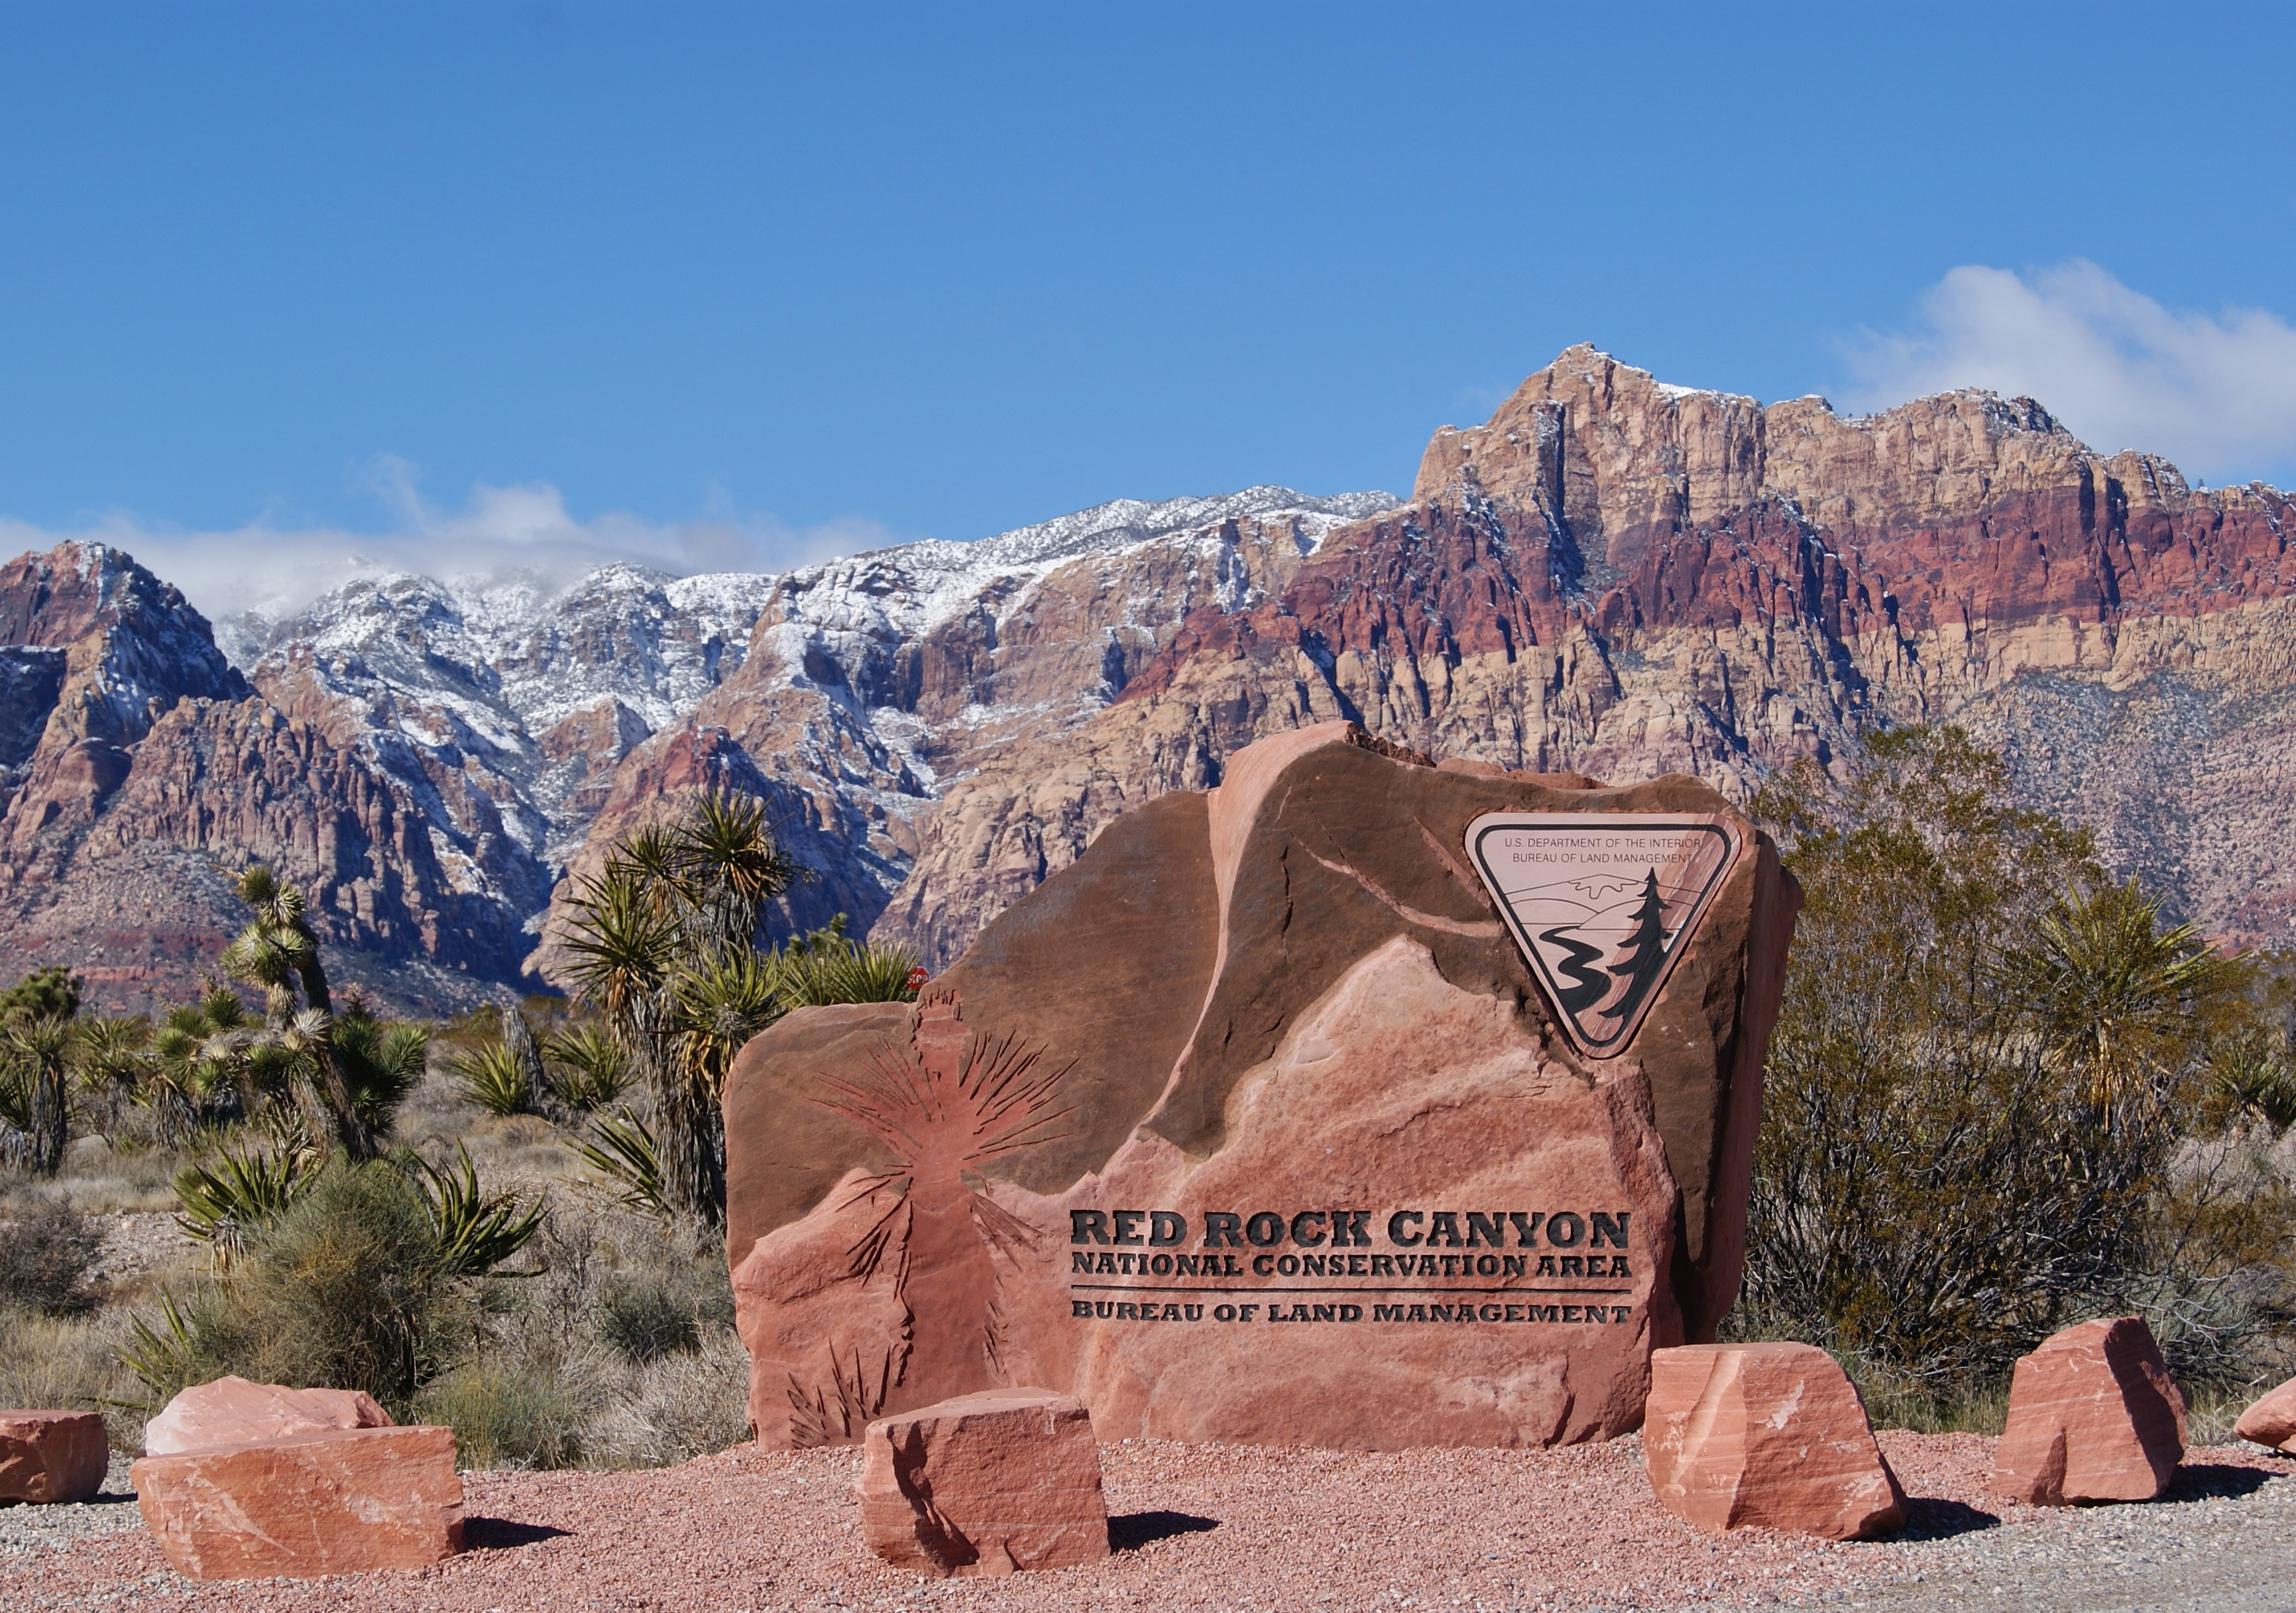 Entrance Sign to Red Rock Canyon